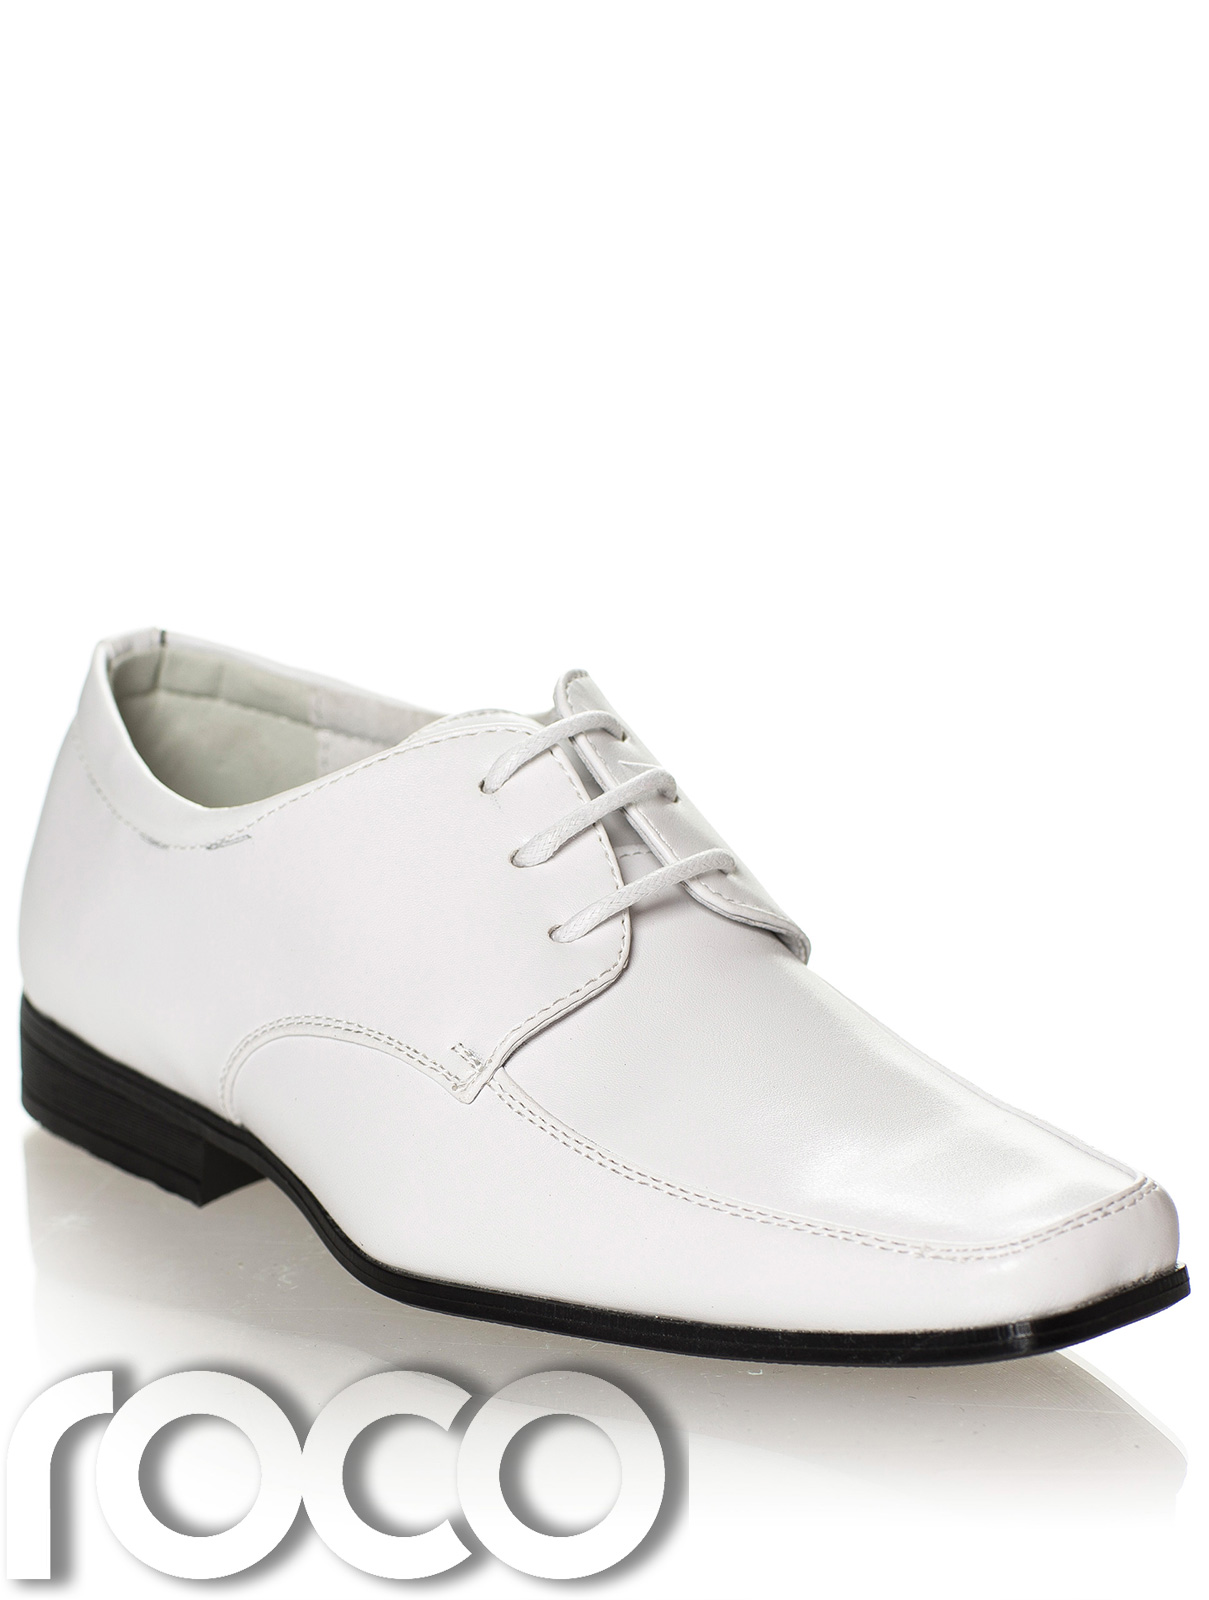 Boys shoes pictures to pin on pinterest